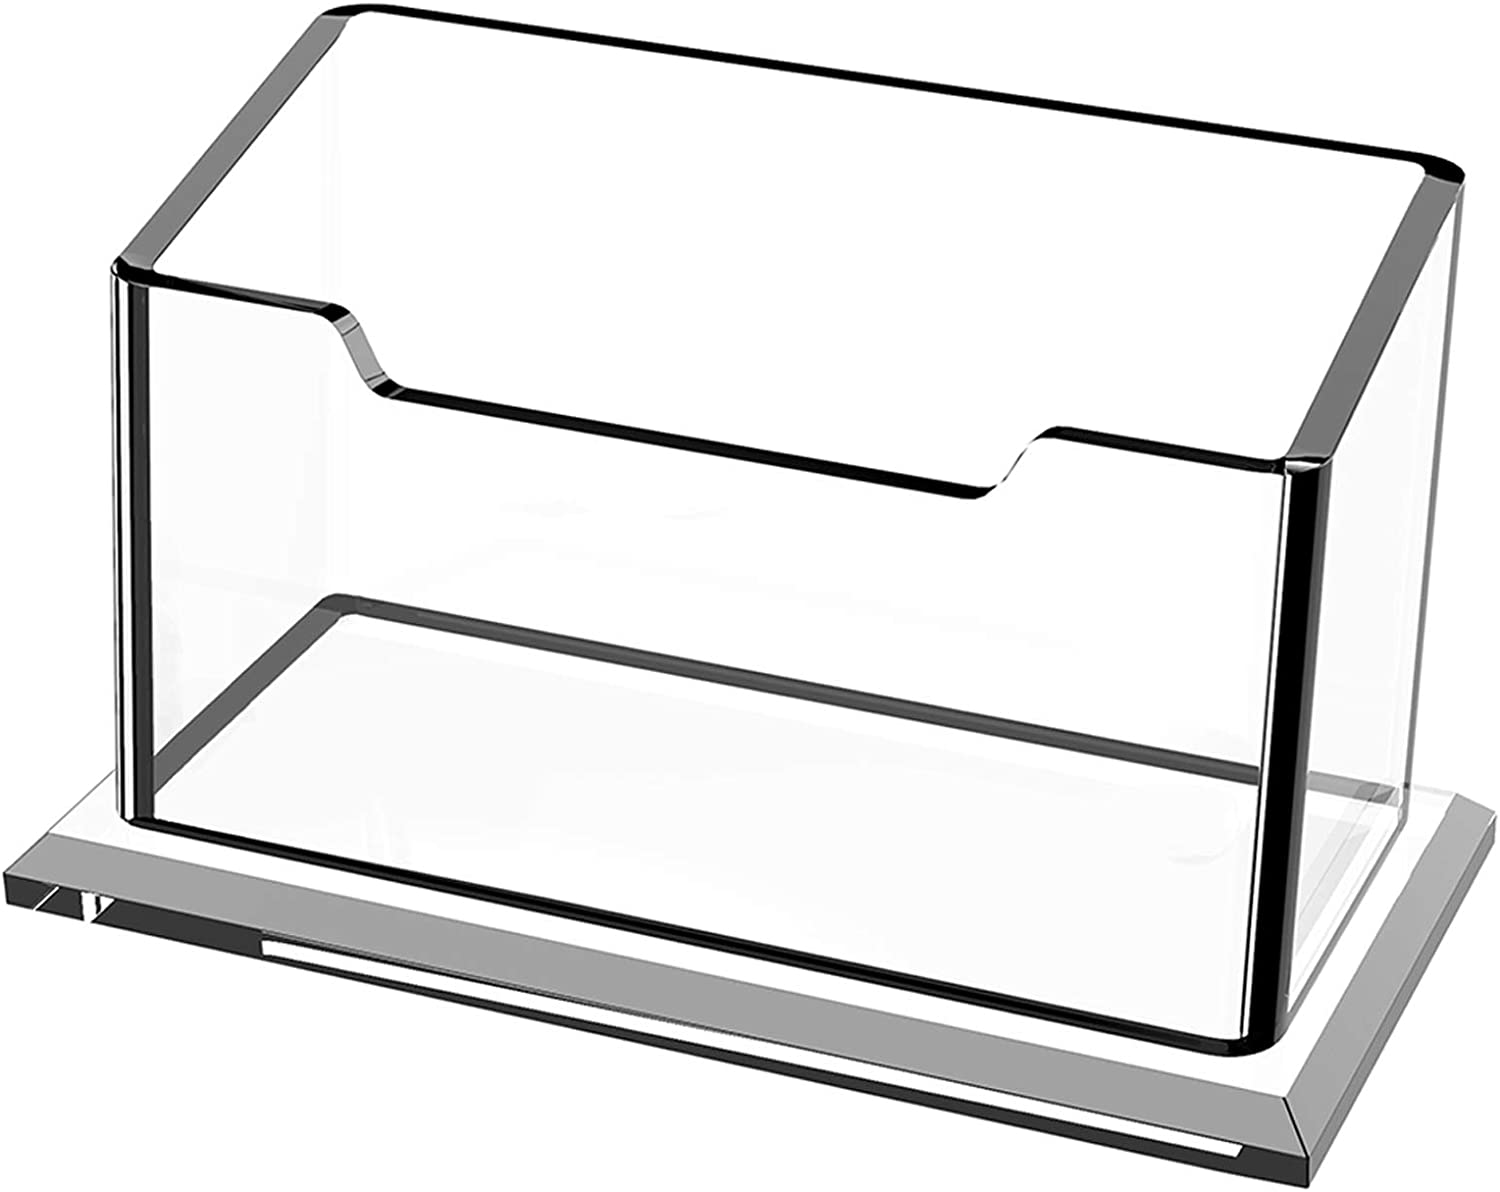 Can Hold 20 Business Cards,Acrylic Card Holder,Desk Business Card ...